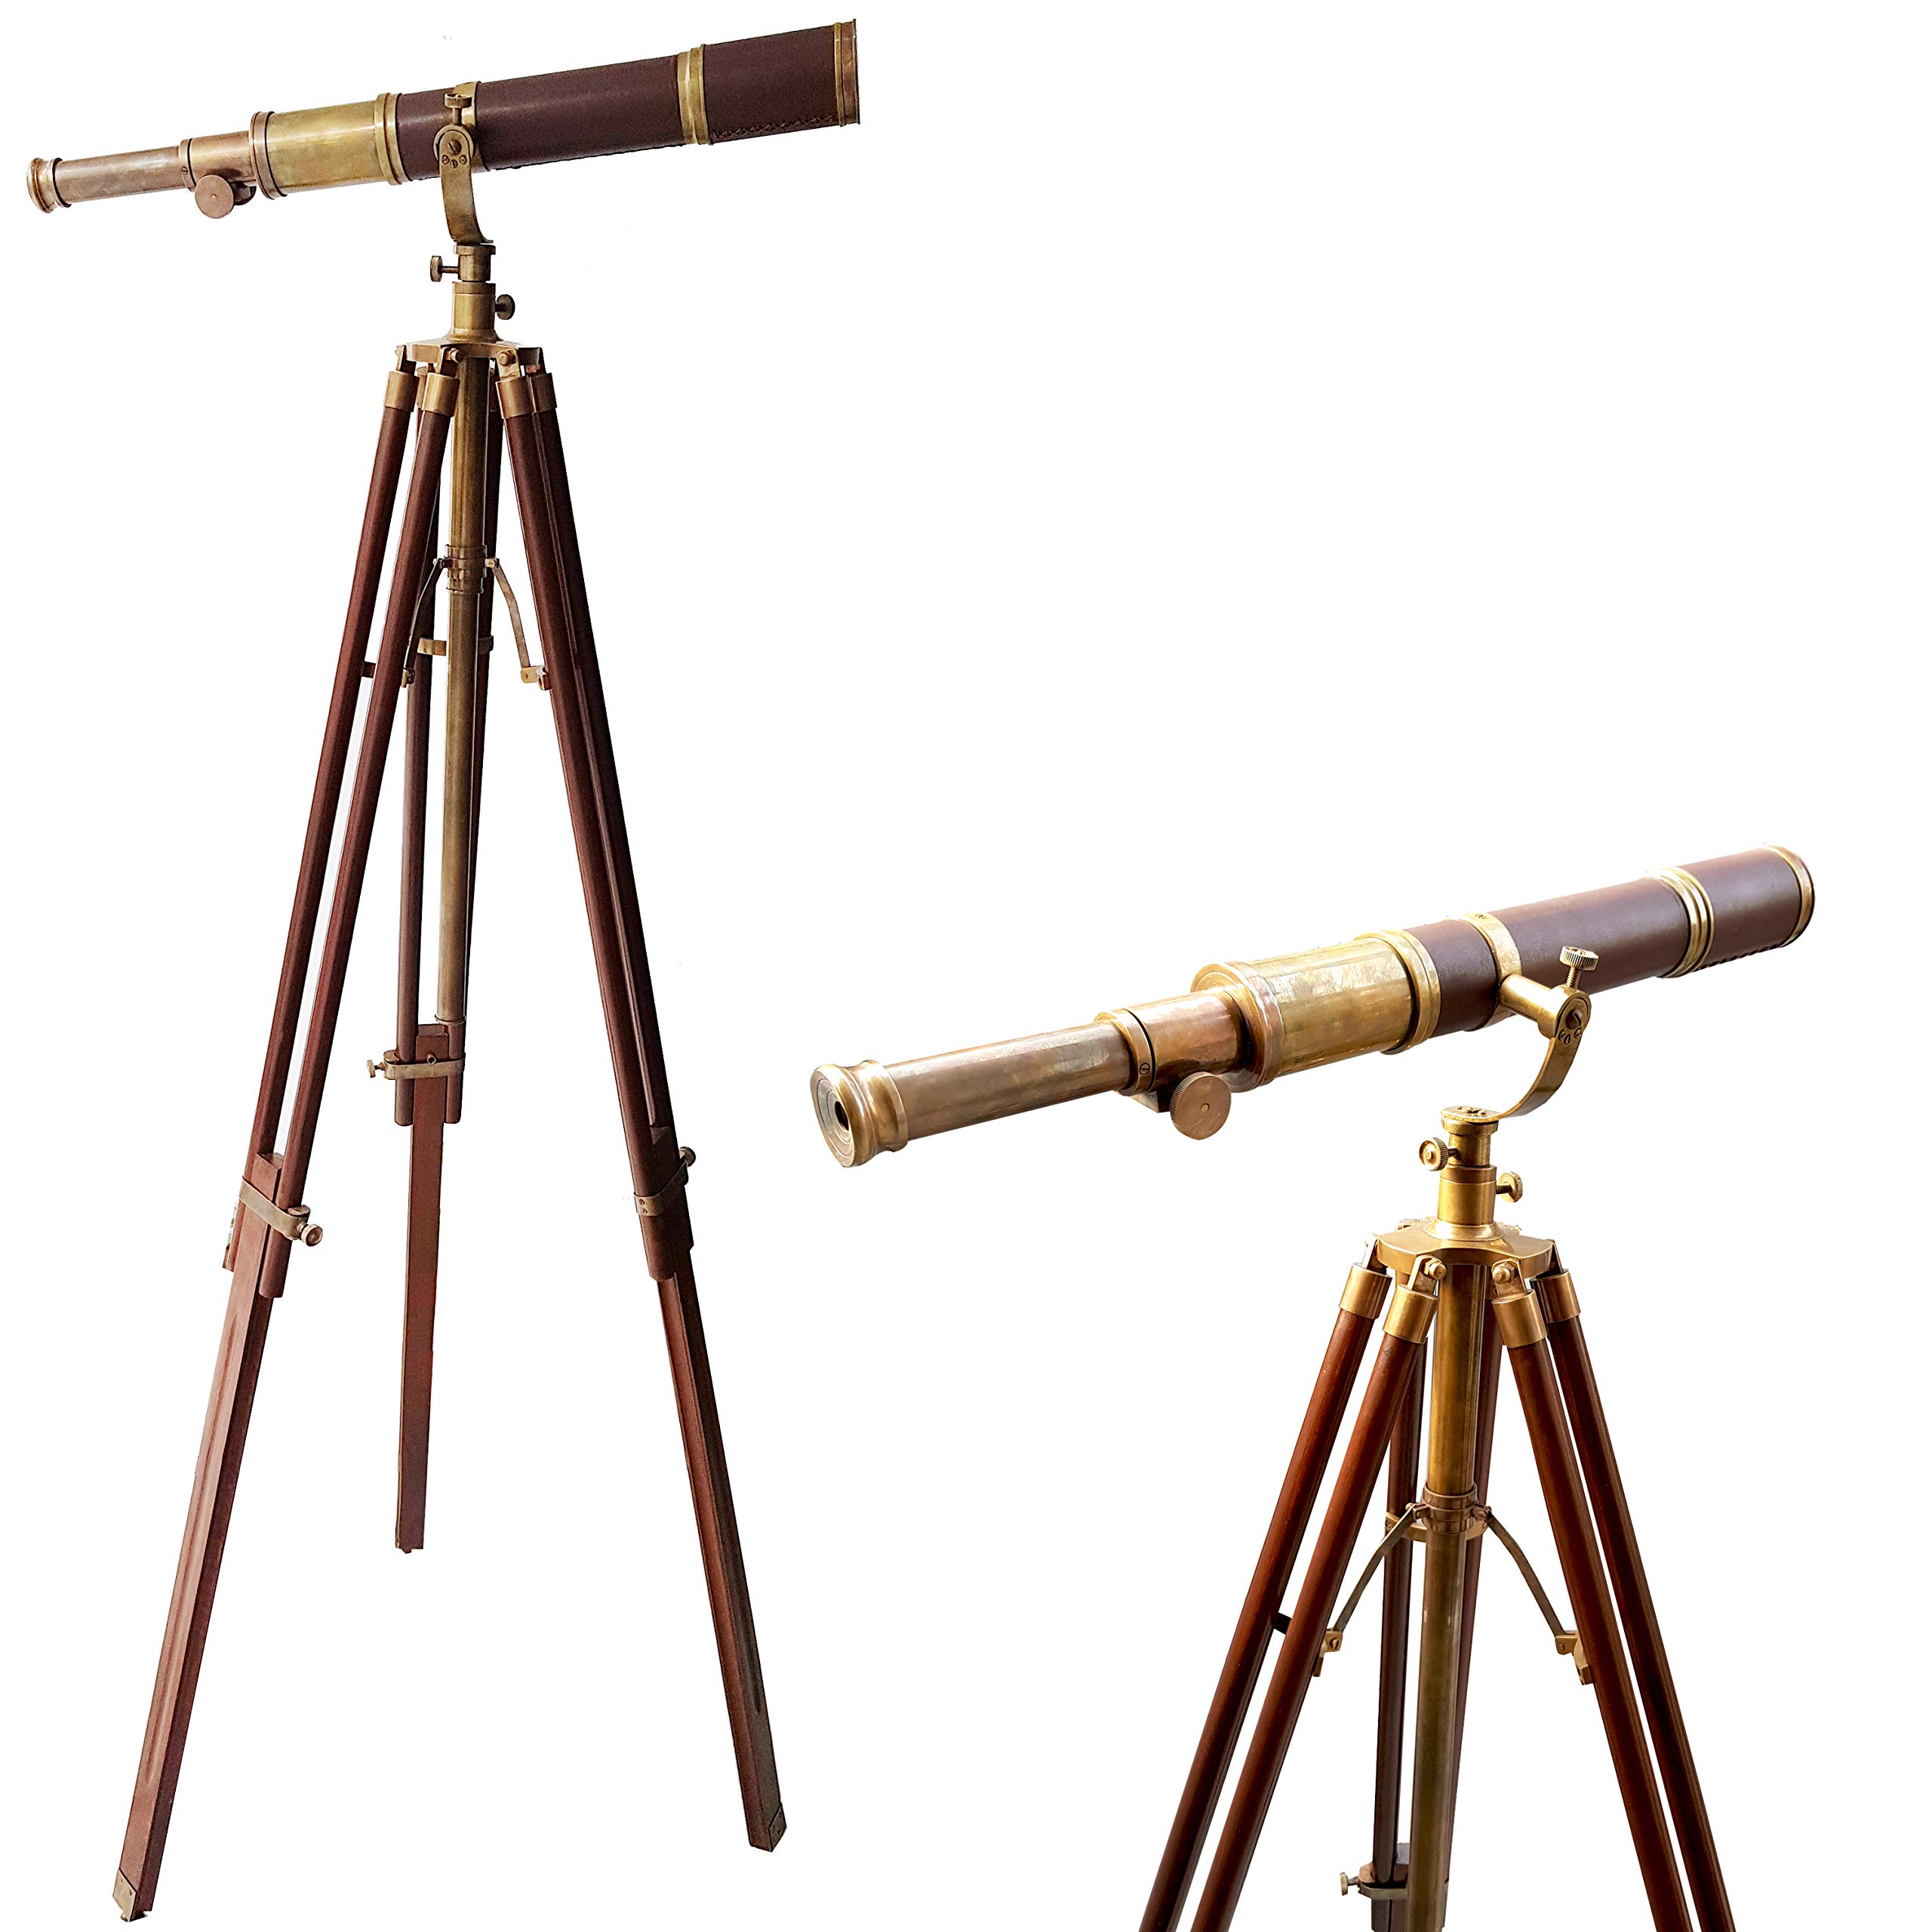 collectiblesBuy Royal Vintage Moon Arc Telescope Antique Handmade Tripod Telescopes Handicraft Nautical Article by collectiblesBuy